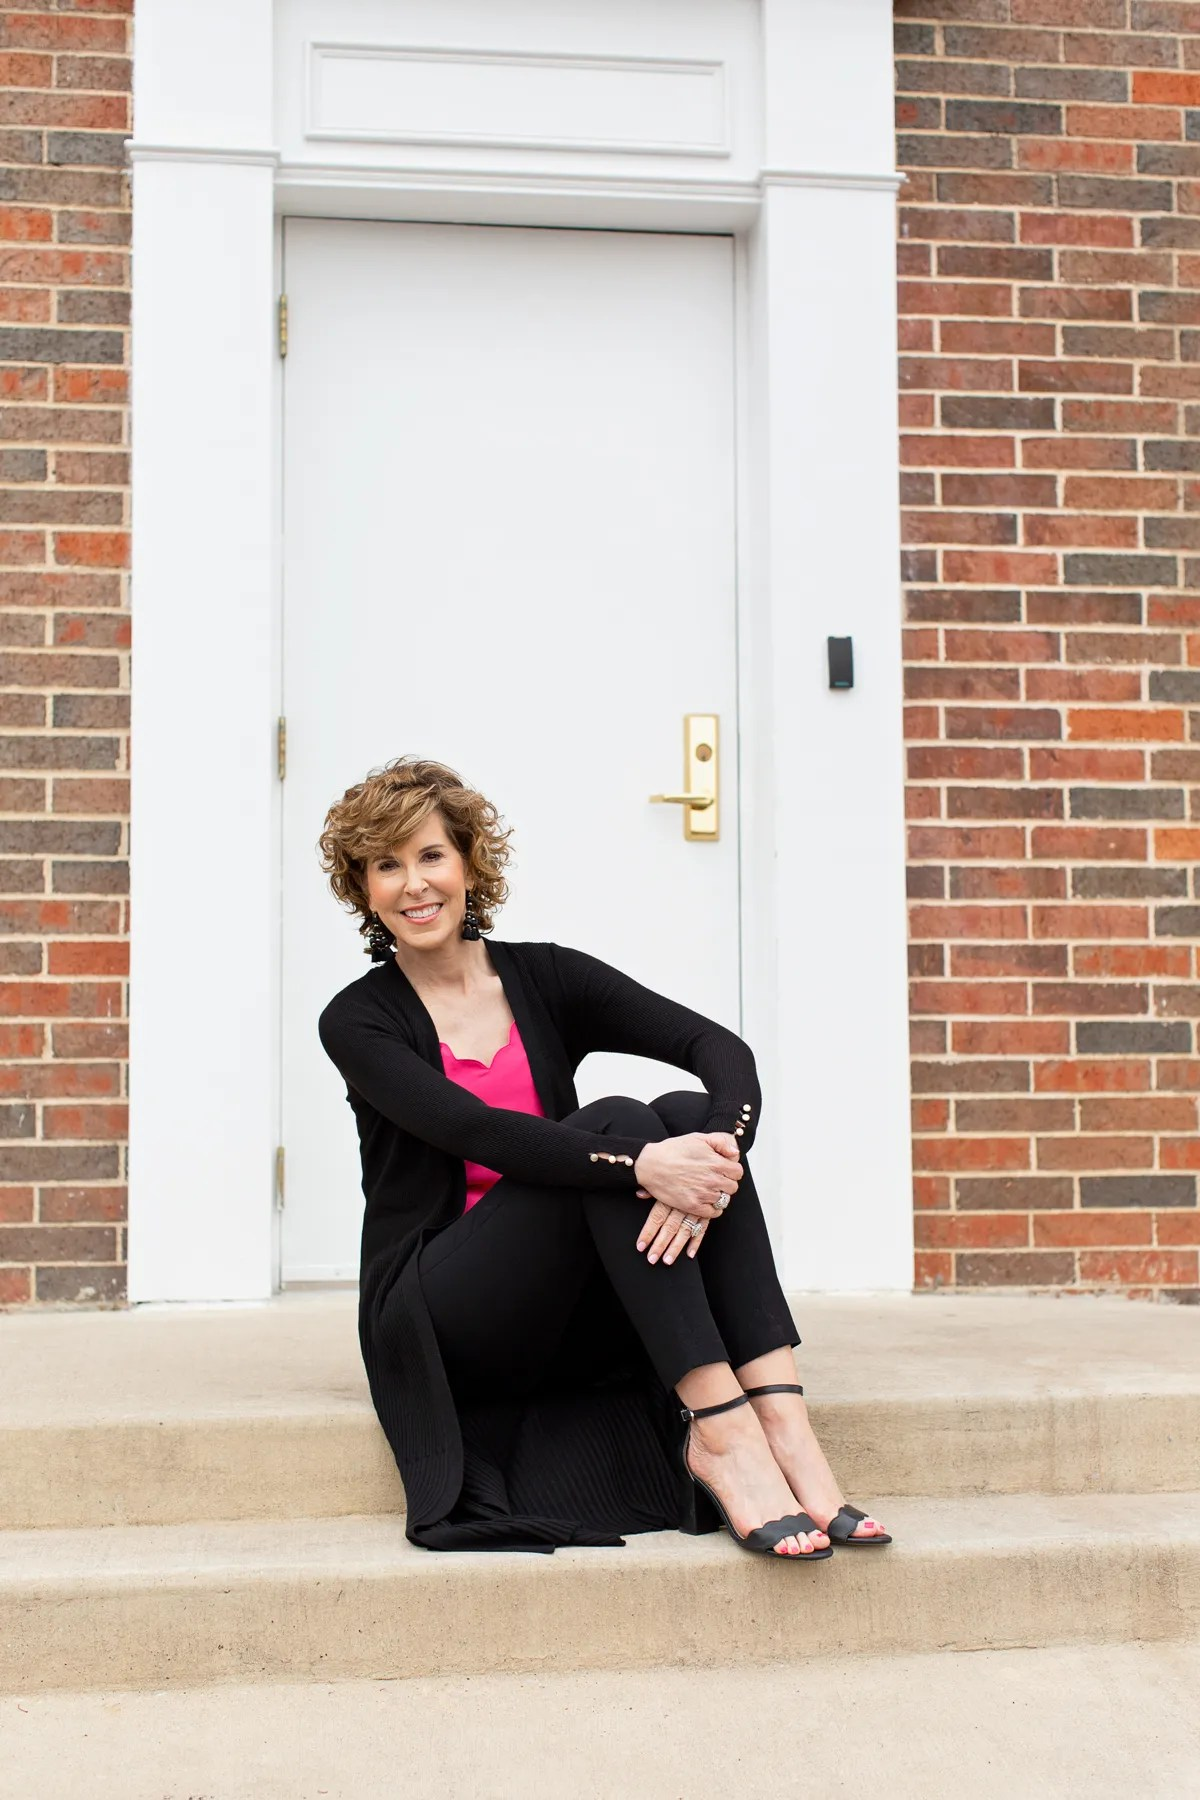 woman sitting in front of doorway in pink top with black sweater